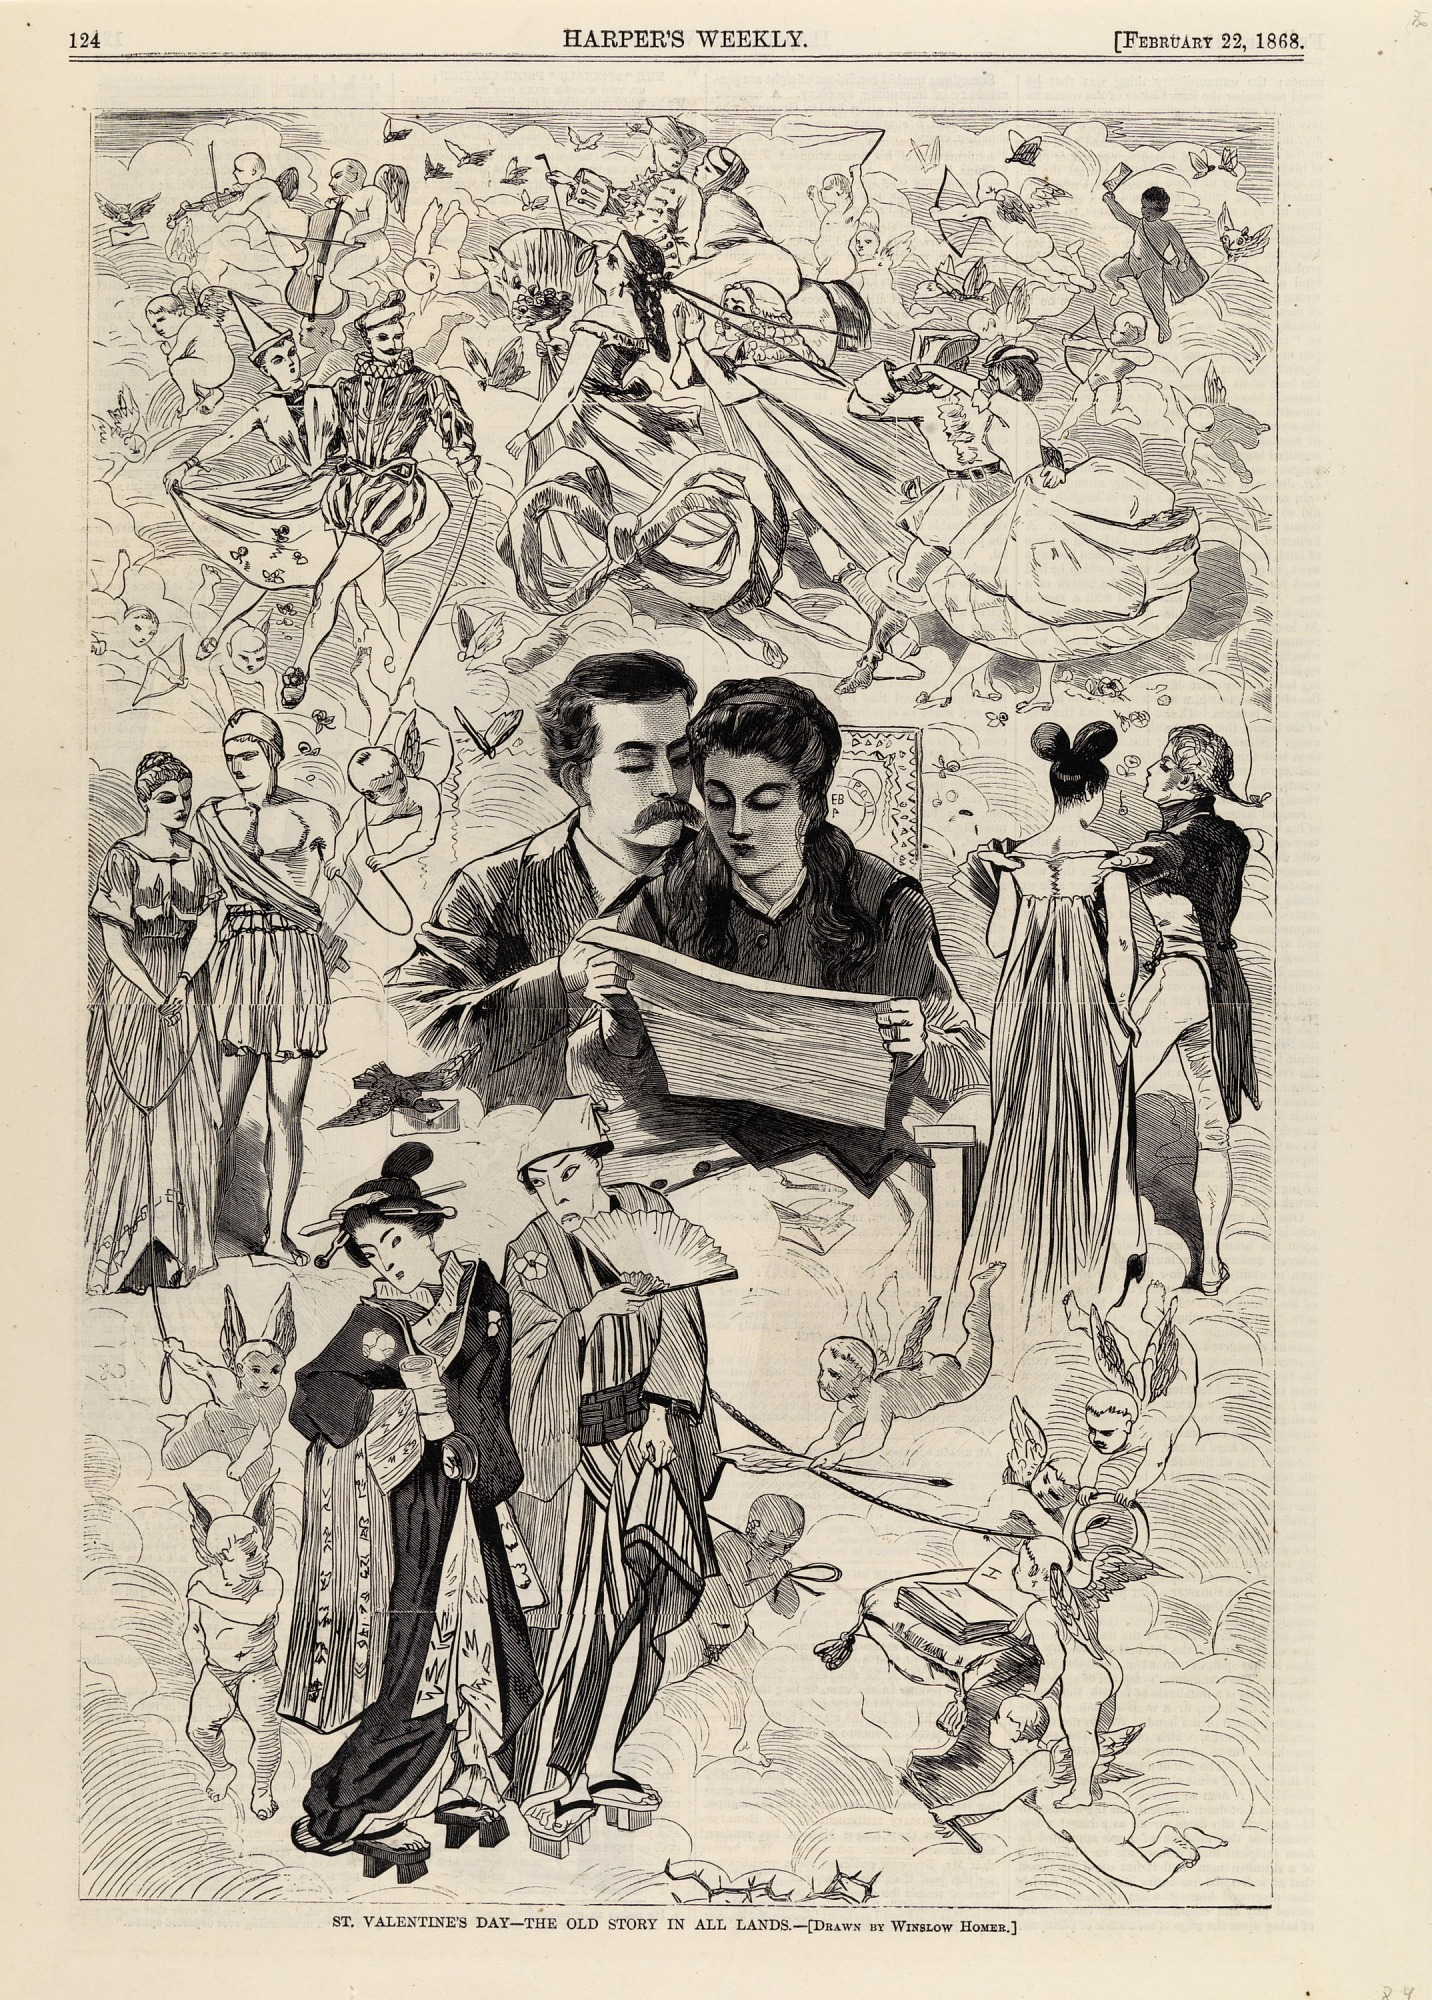 images for St. Valentine's Day--The Old Story in All Lands, from Harper's Weekly, February 22, 1868